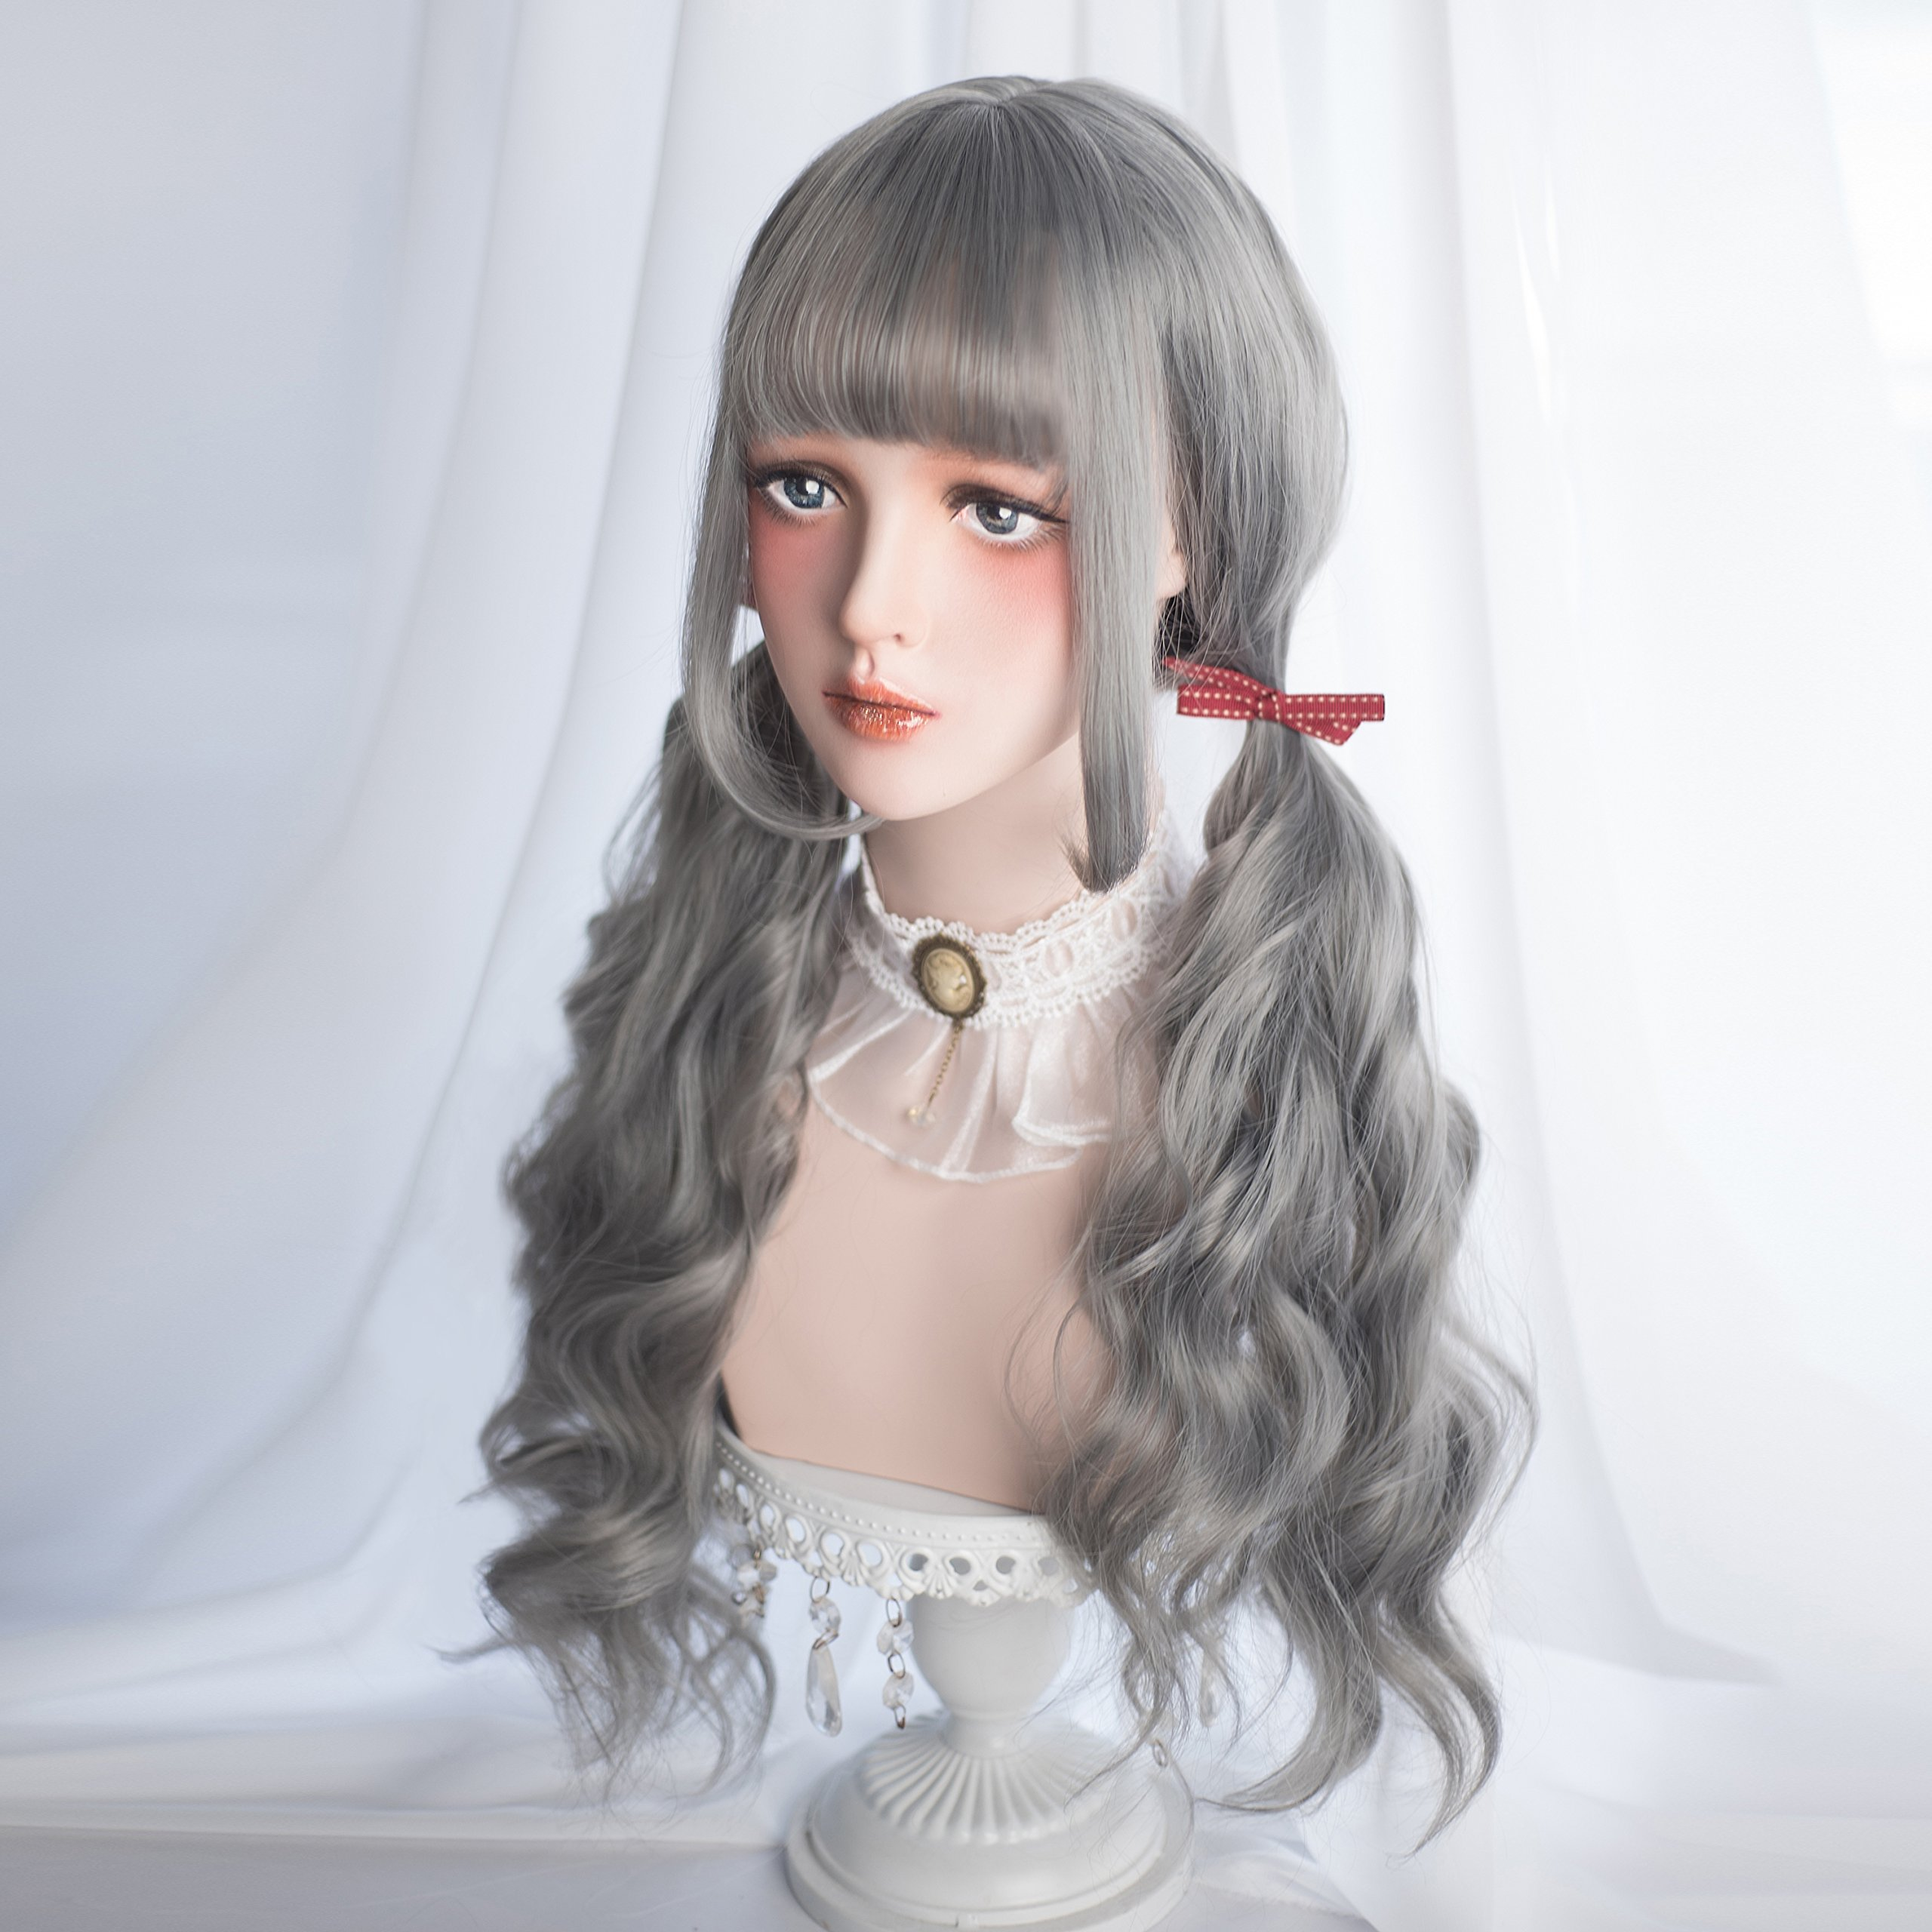 Long Wavy Grey Wig Bangs - Natural Gray Wigs for Women and Girls Cosplay Costume, Lolita Style Synthetic Hair with Wig Cap